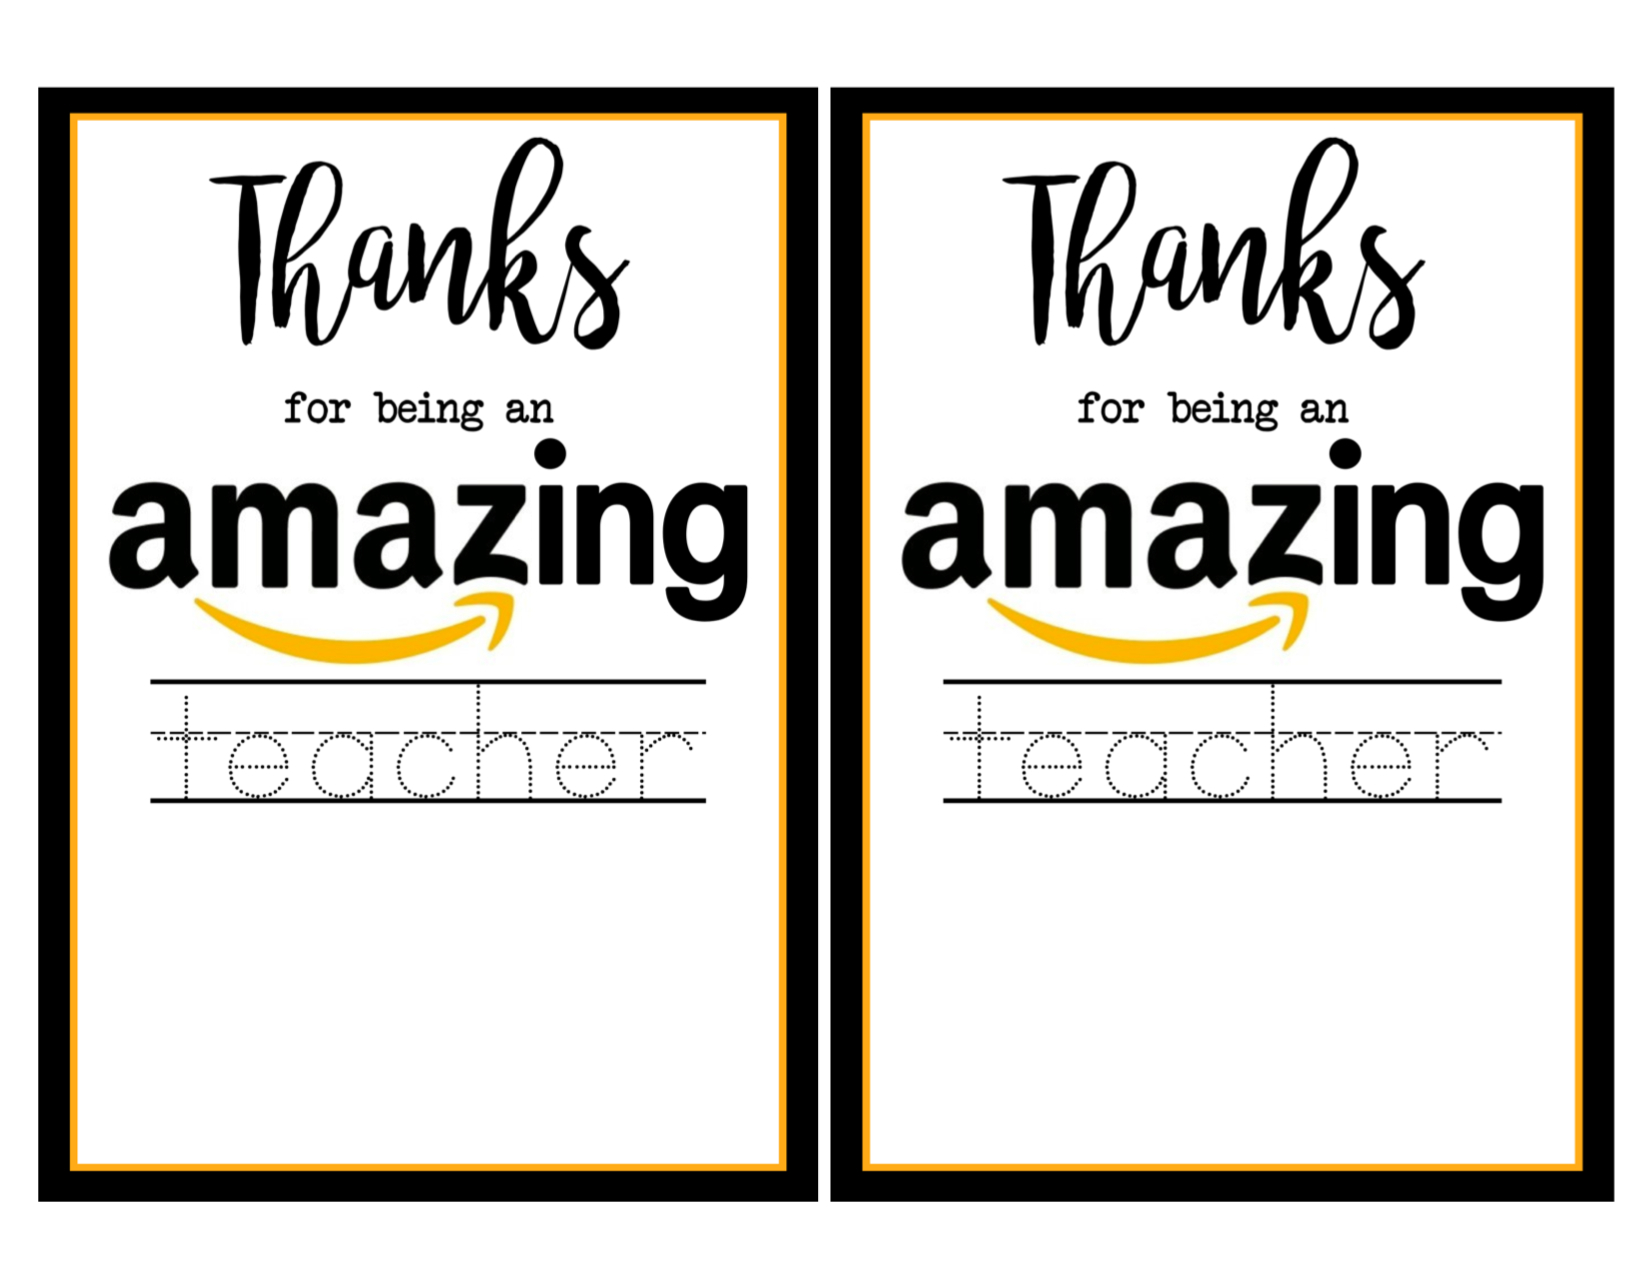 picture about Amazon Gift Card Printable identify Trainer Appreciation Amazon Card - Paper Path Layout